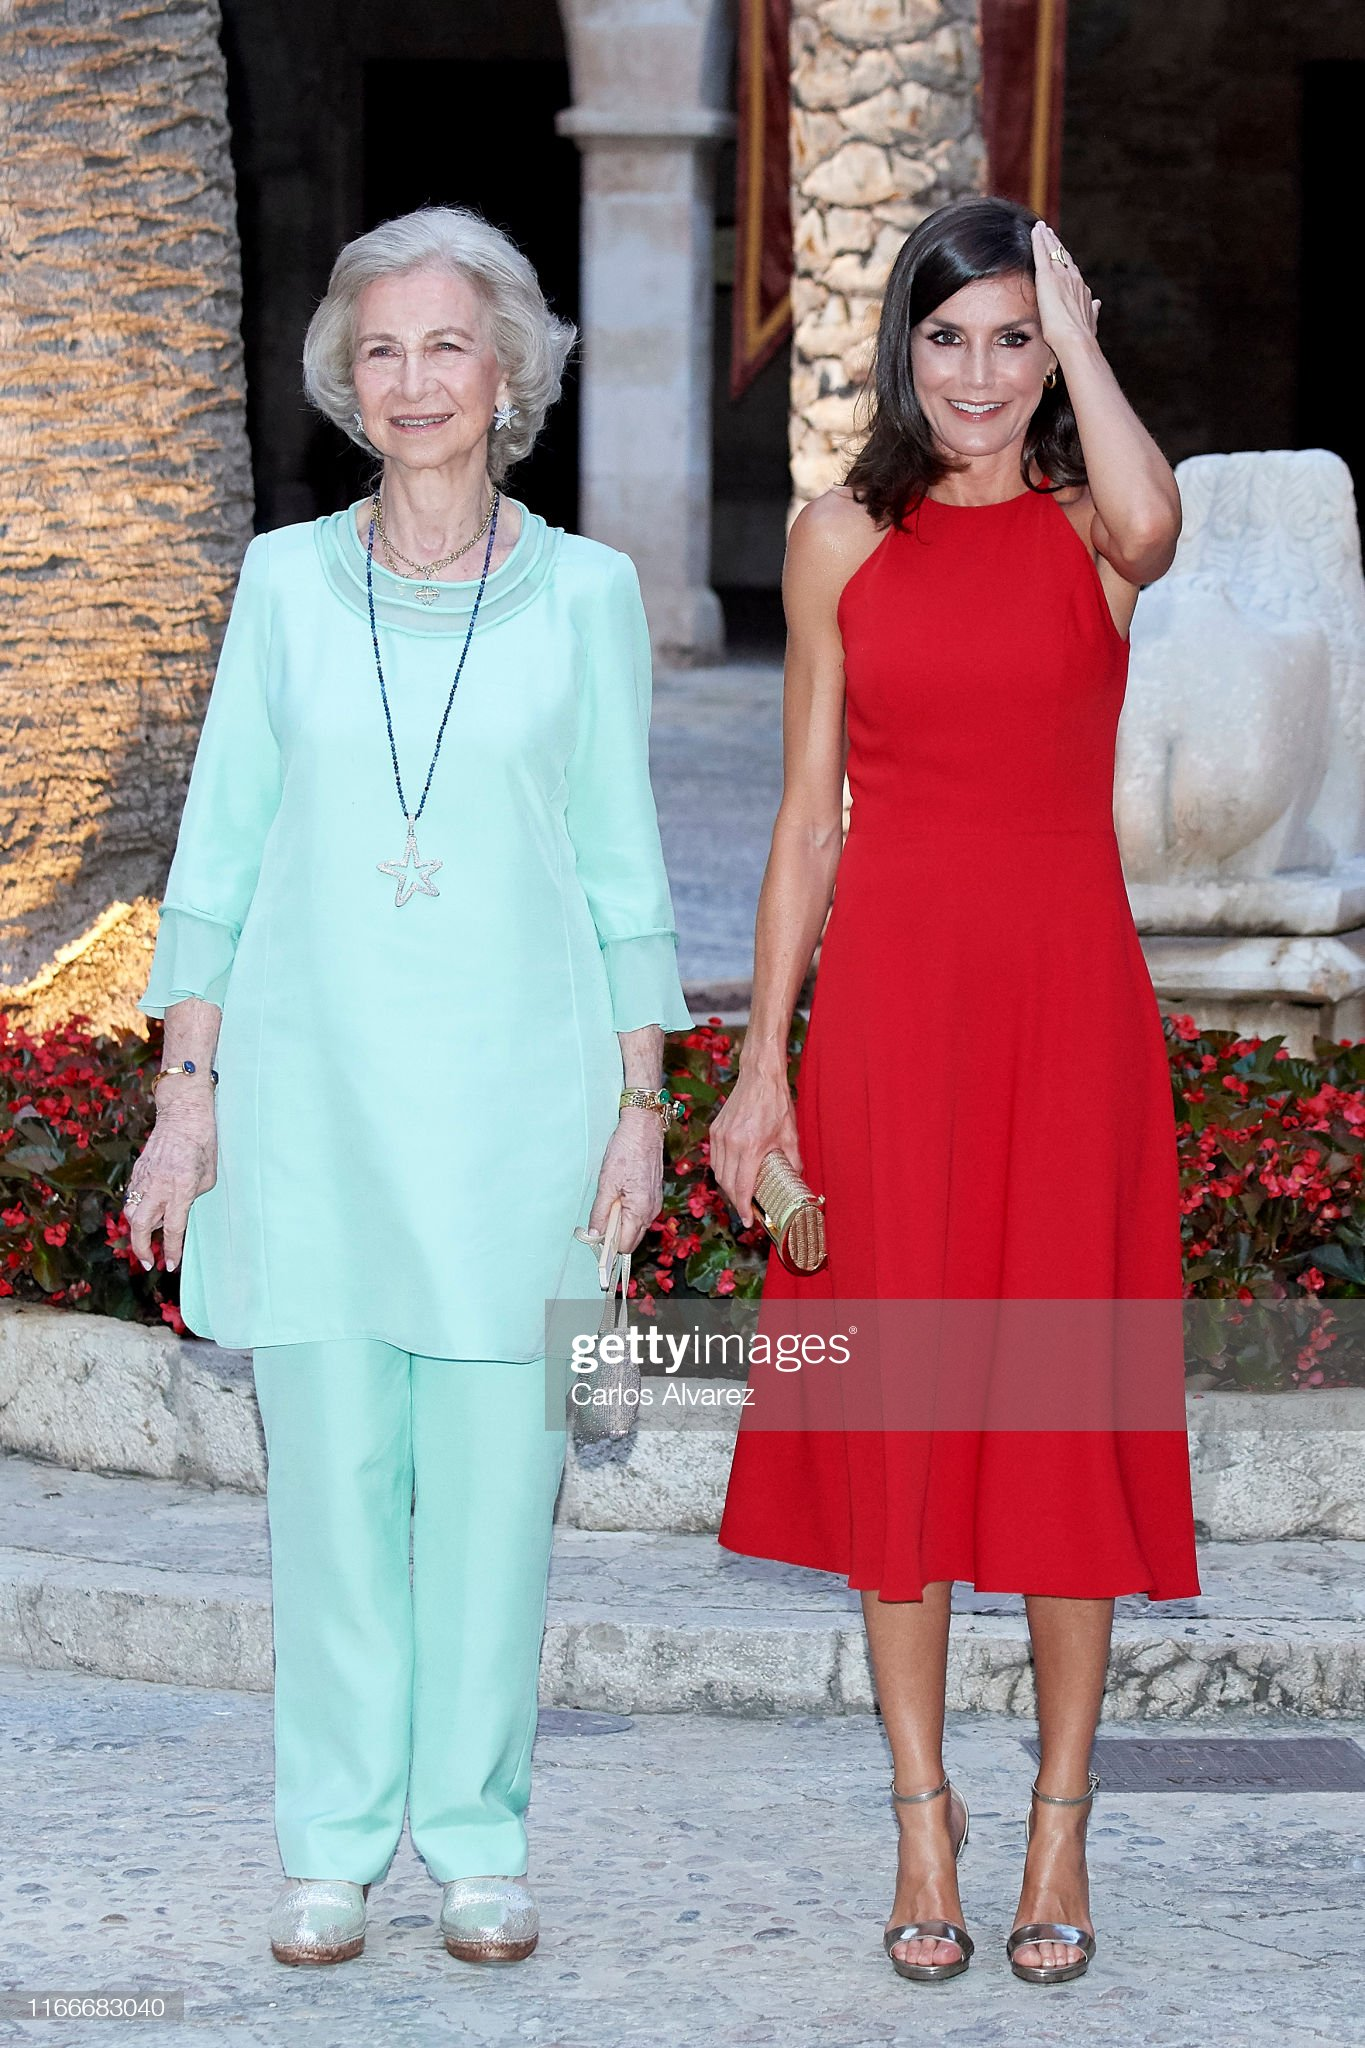 https://media.gettyimages.com/photos/queen-letizia-of-spain-and-queen-sofia-host-a-dinner-for-authorities-picture-id1166683040?s=2048x2048